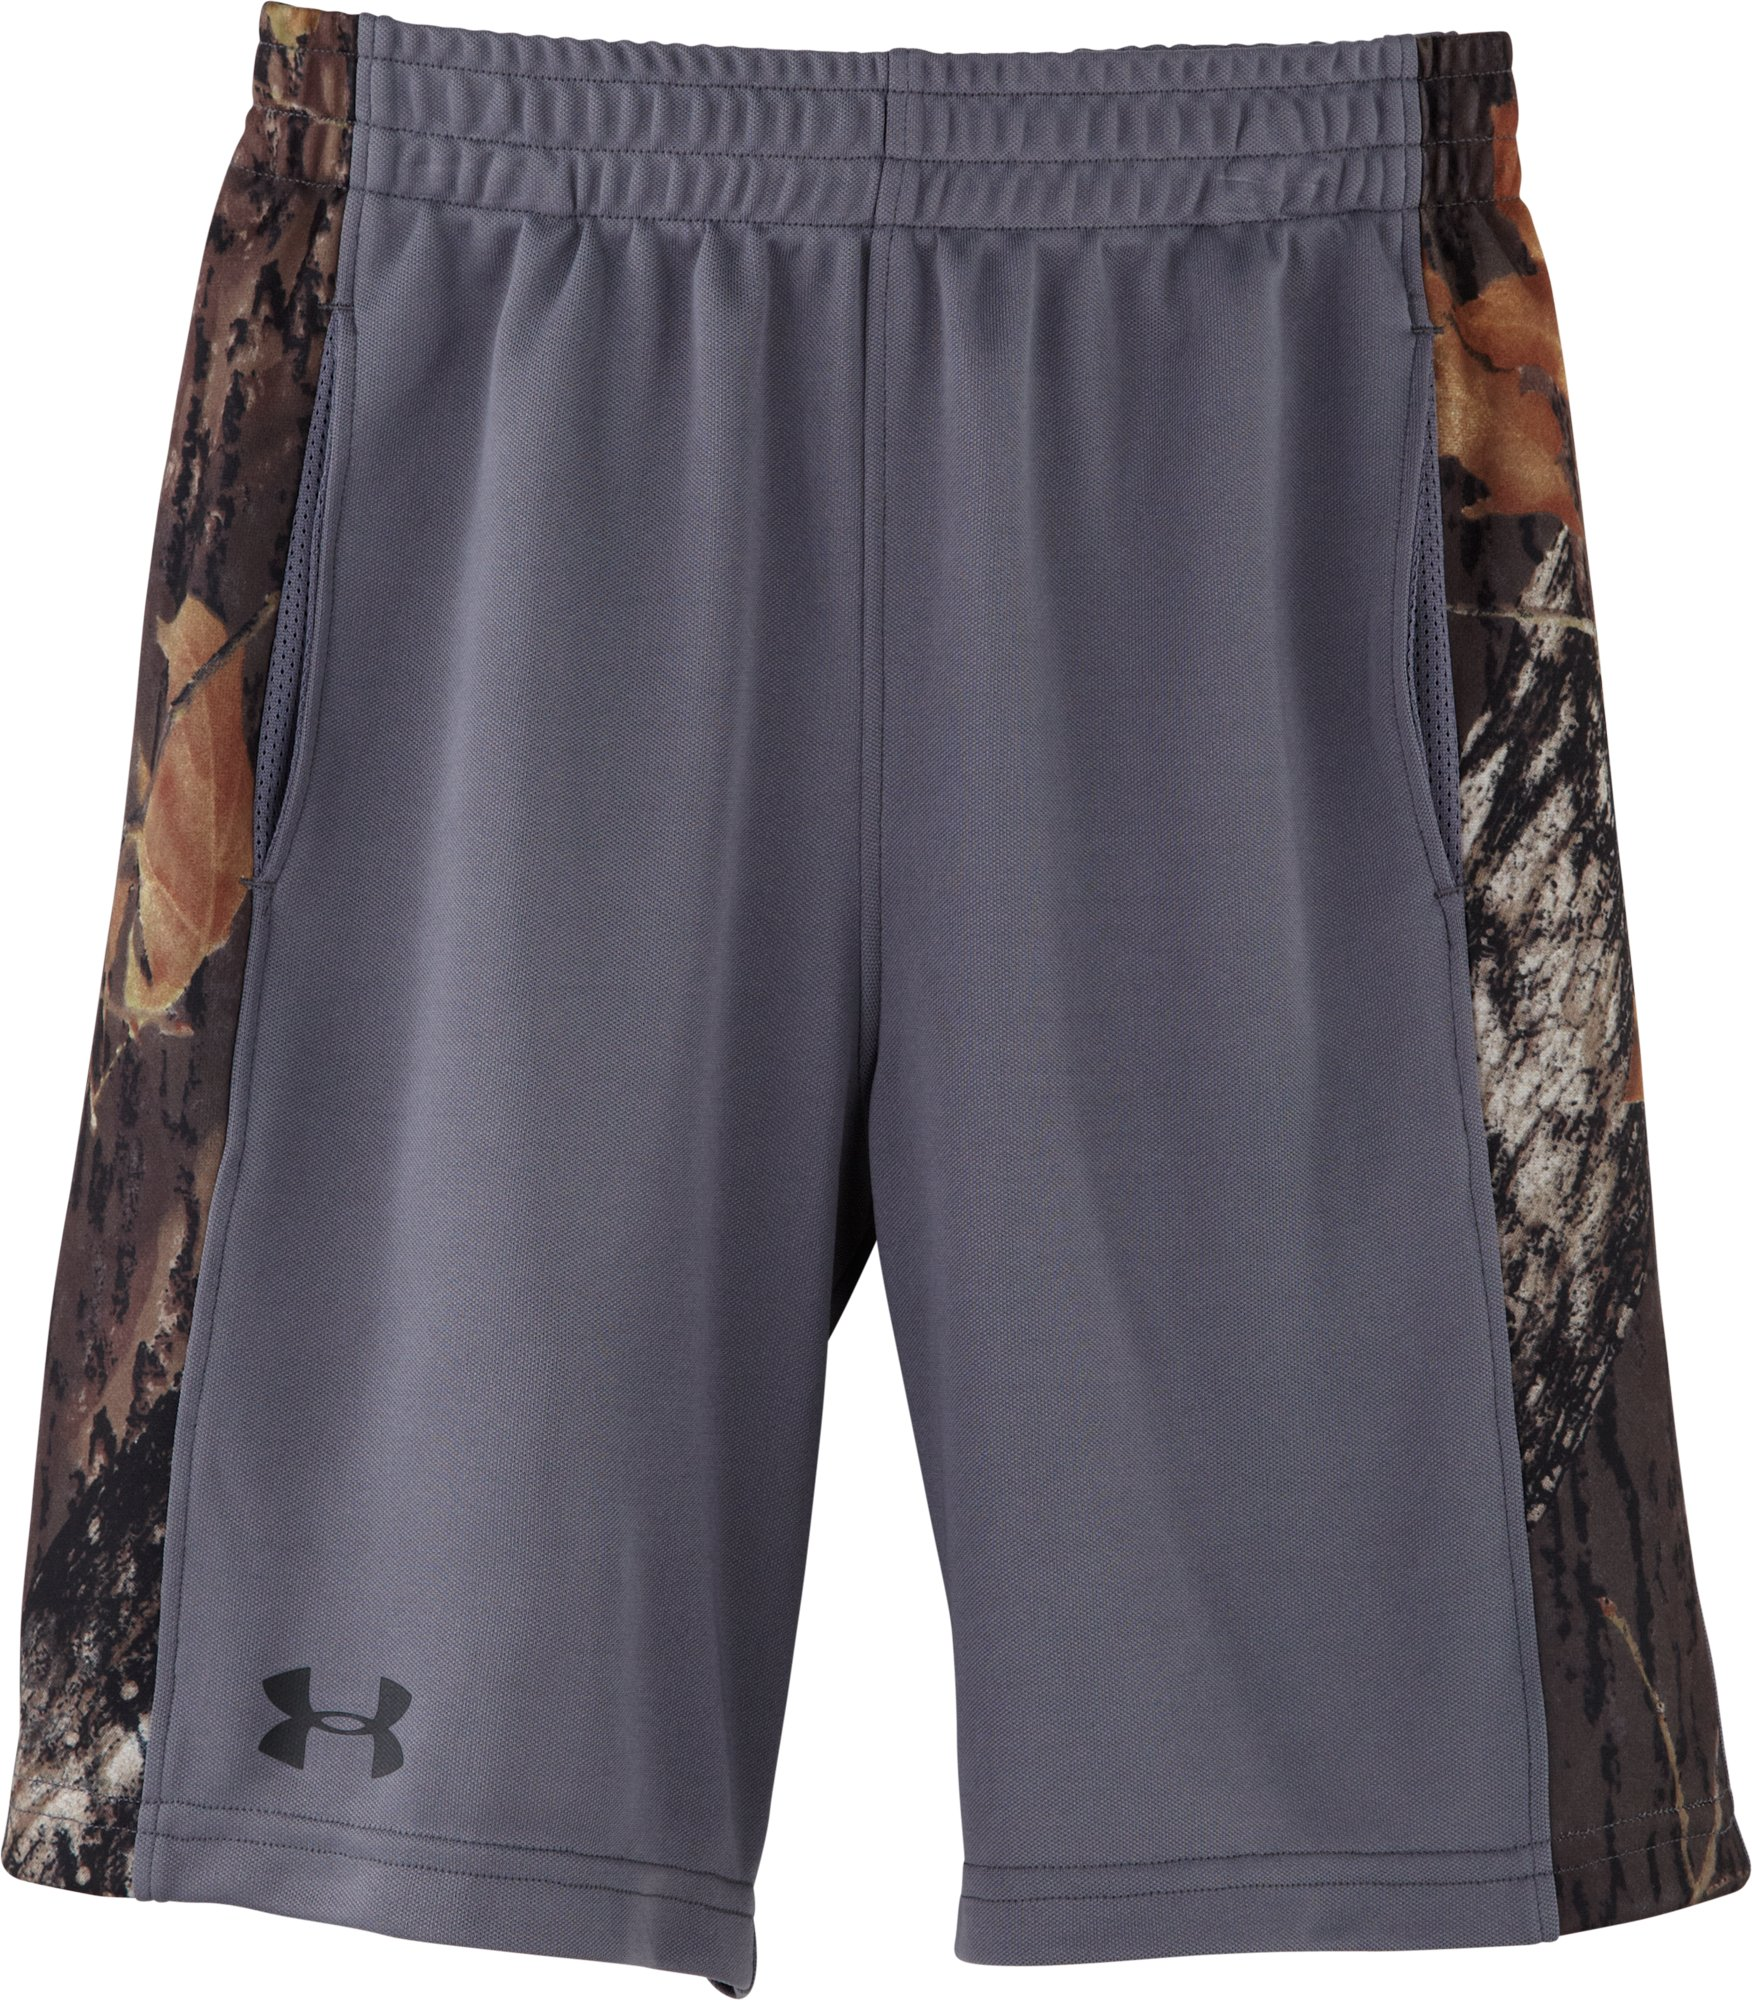 Boys' Toddler UA Ultimate Camo Shorts, Graphite, zoomed image